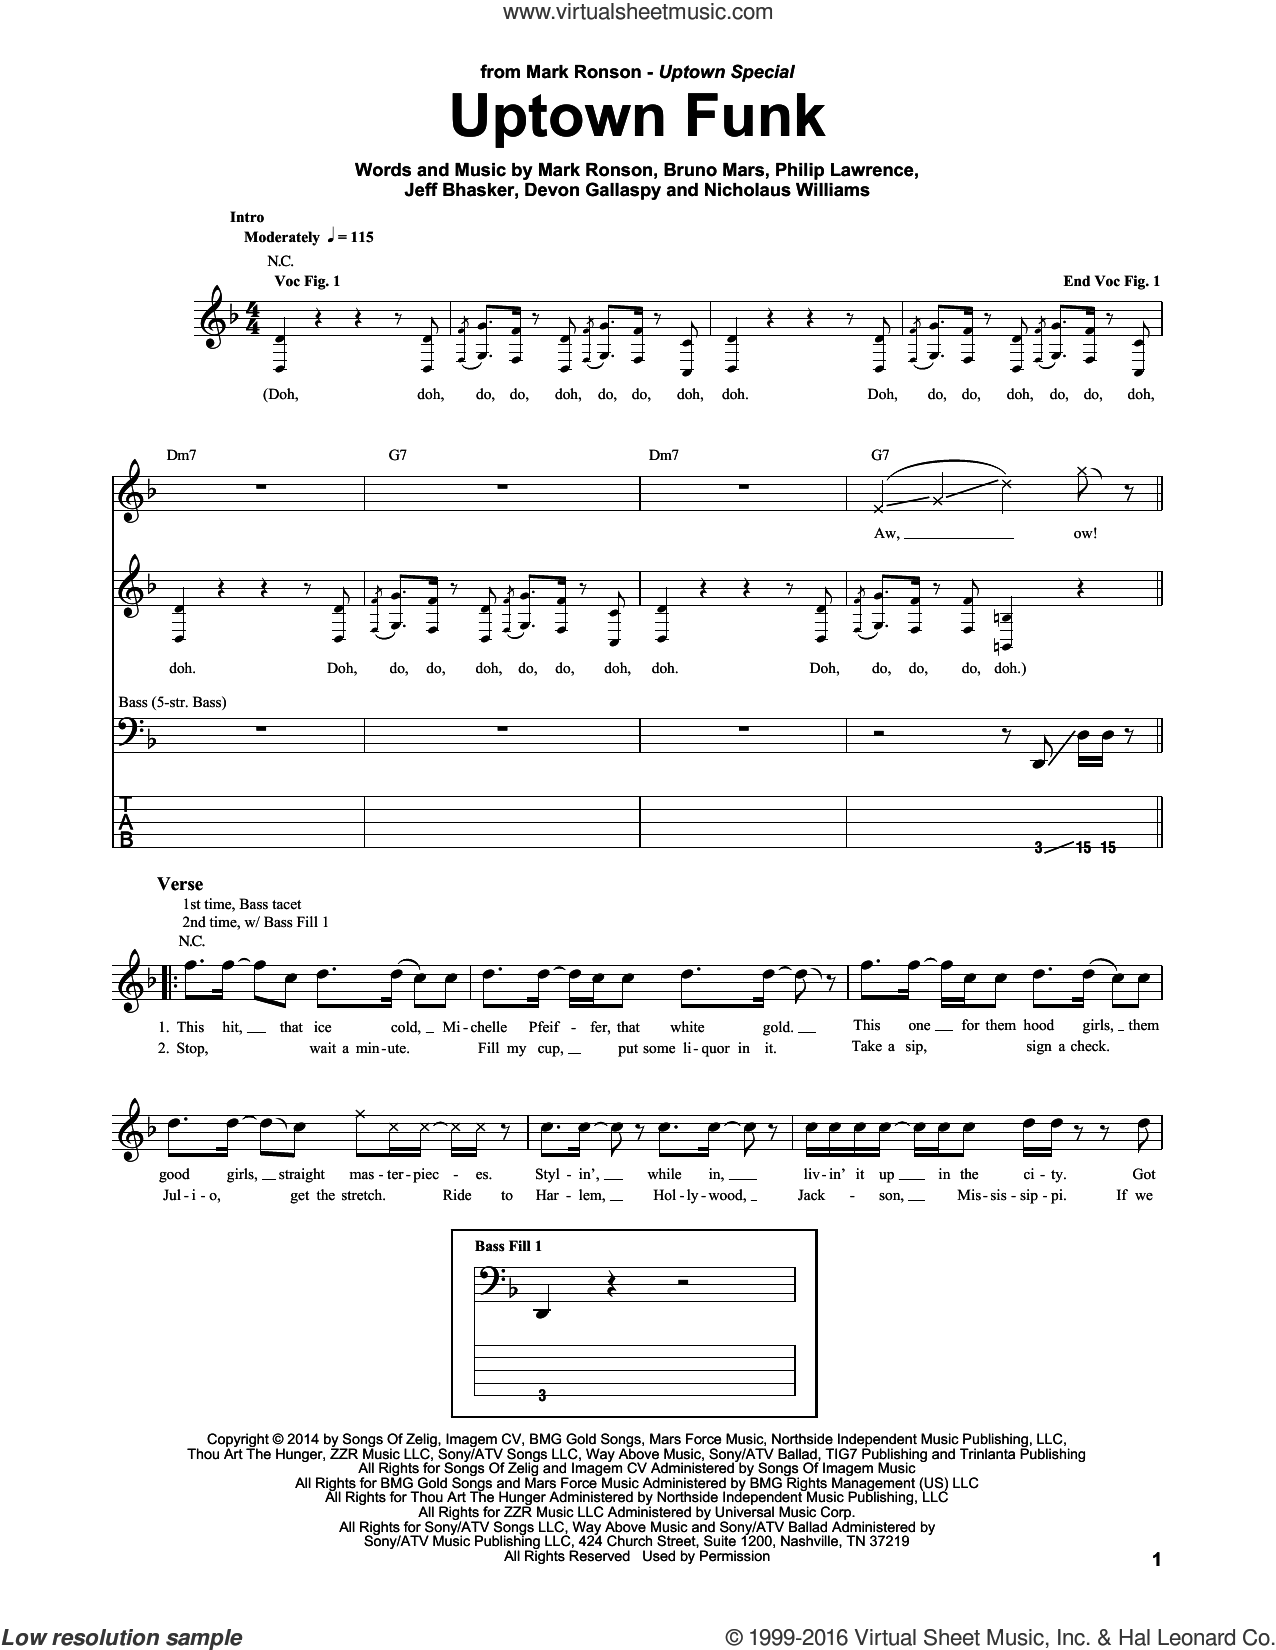 Uptown Funk sheet music for bass (tablature) (bass guitar) by Mark Ronson ft. Bruno Mars, Bruno Mars, Devon Gallaspy, Jeff Bhasker, Mark Ronson and Philip Lawrence. Score Image Preview.